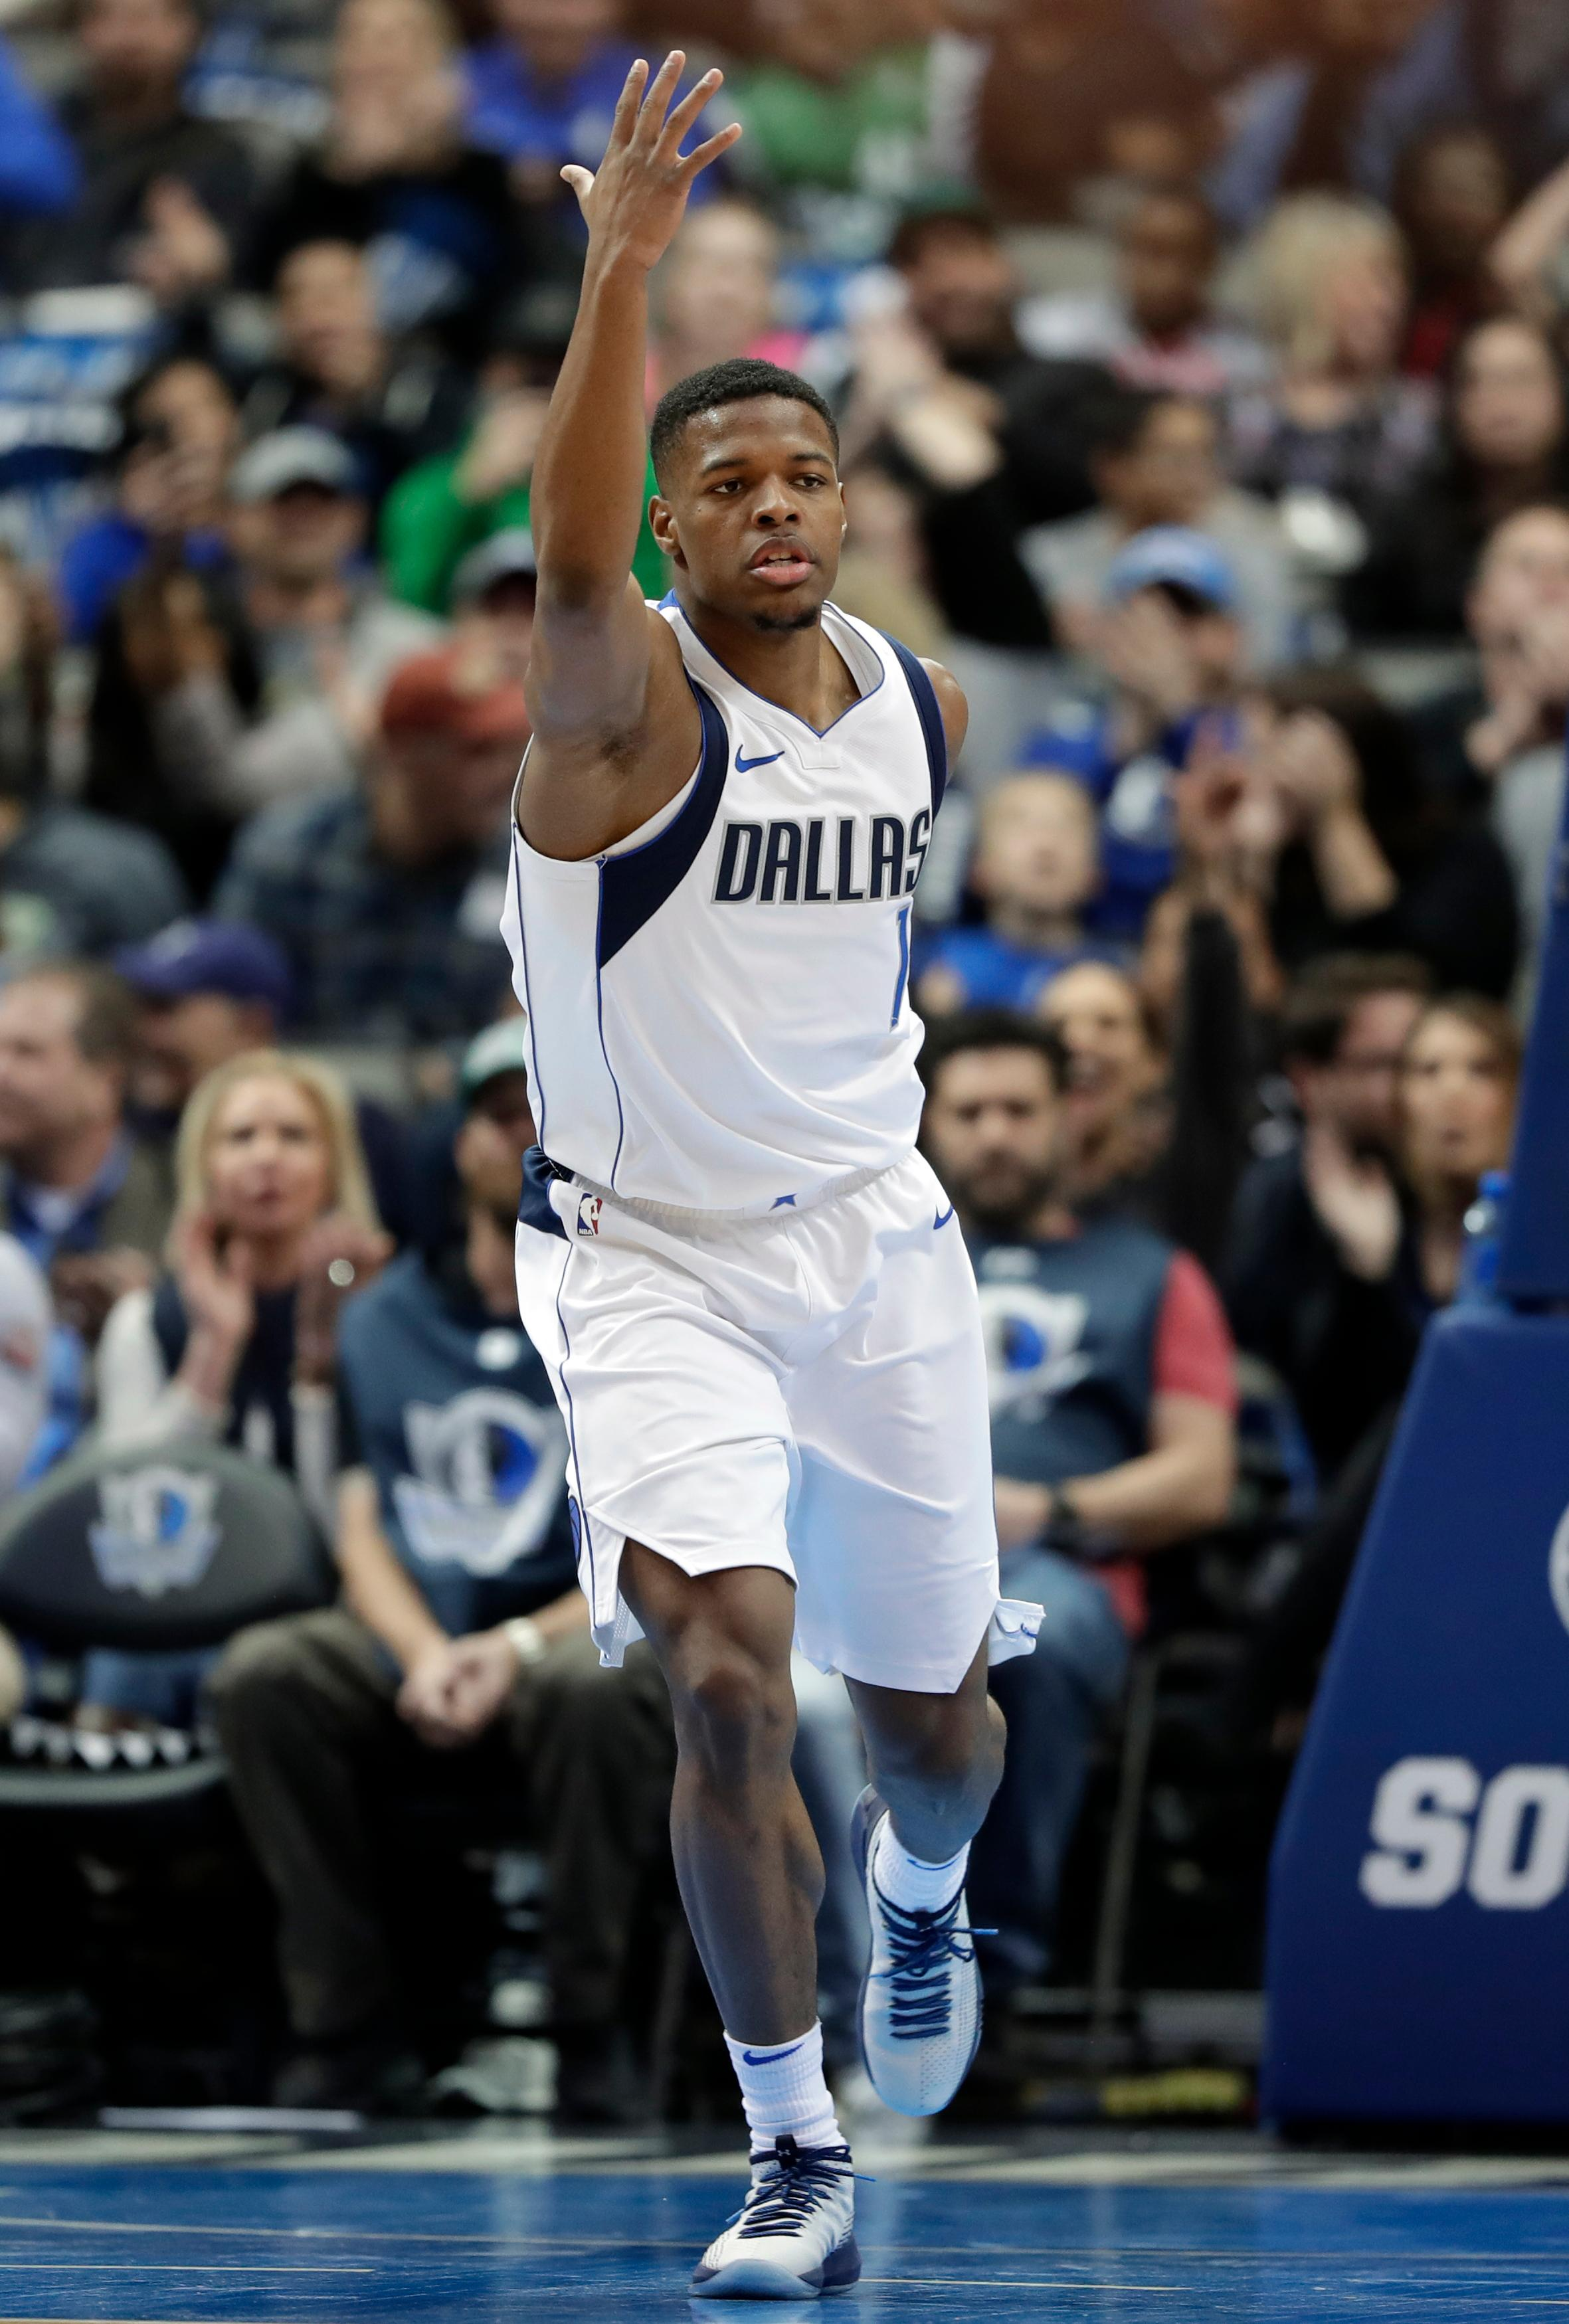 Dallas Mavericks' Dennis Smith Jr. celebrates after dunking on a breakaway play in the first half of an NBA basketball game against the Washington Wizards, Monday, Jan. 22, 2018, in Dallas. (AP Photo/Tony Gutierrez)